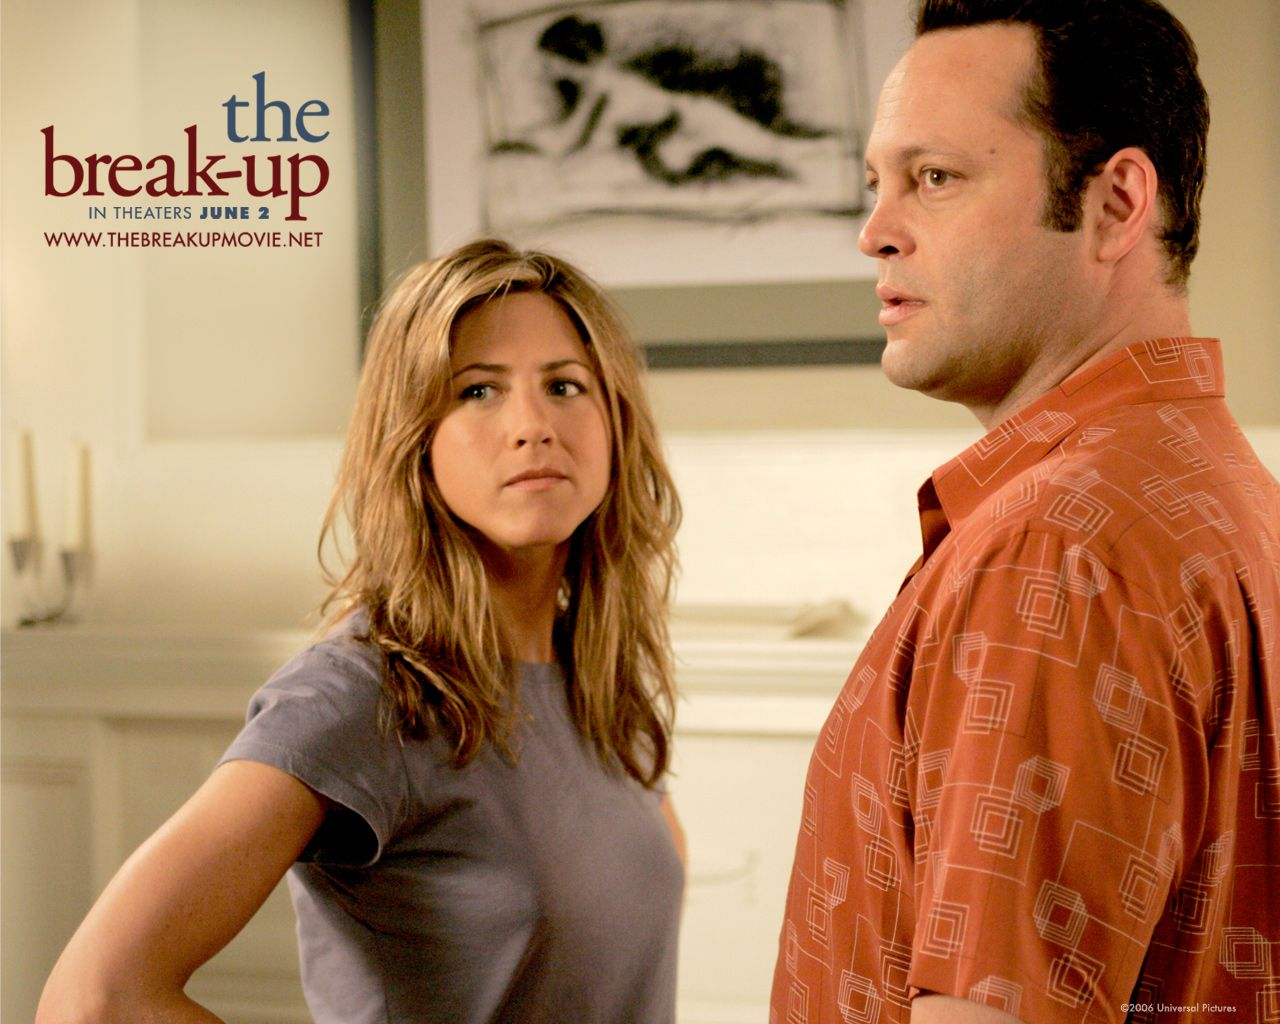 10 Best Movies To Watch After a Breakup